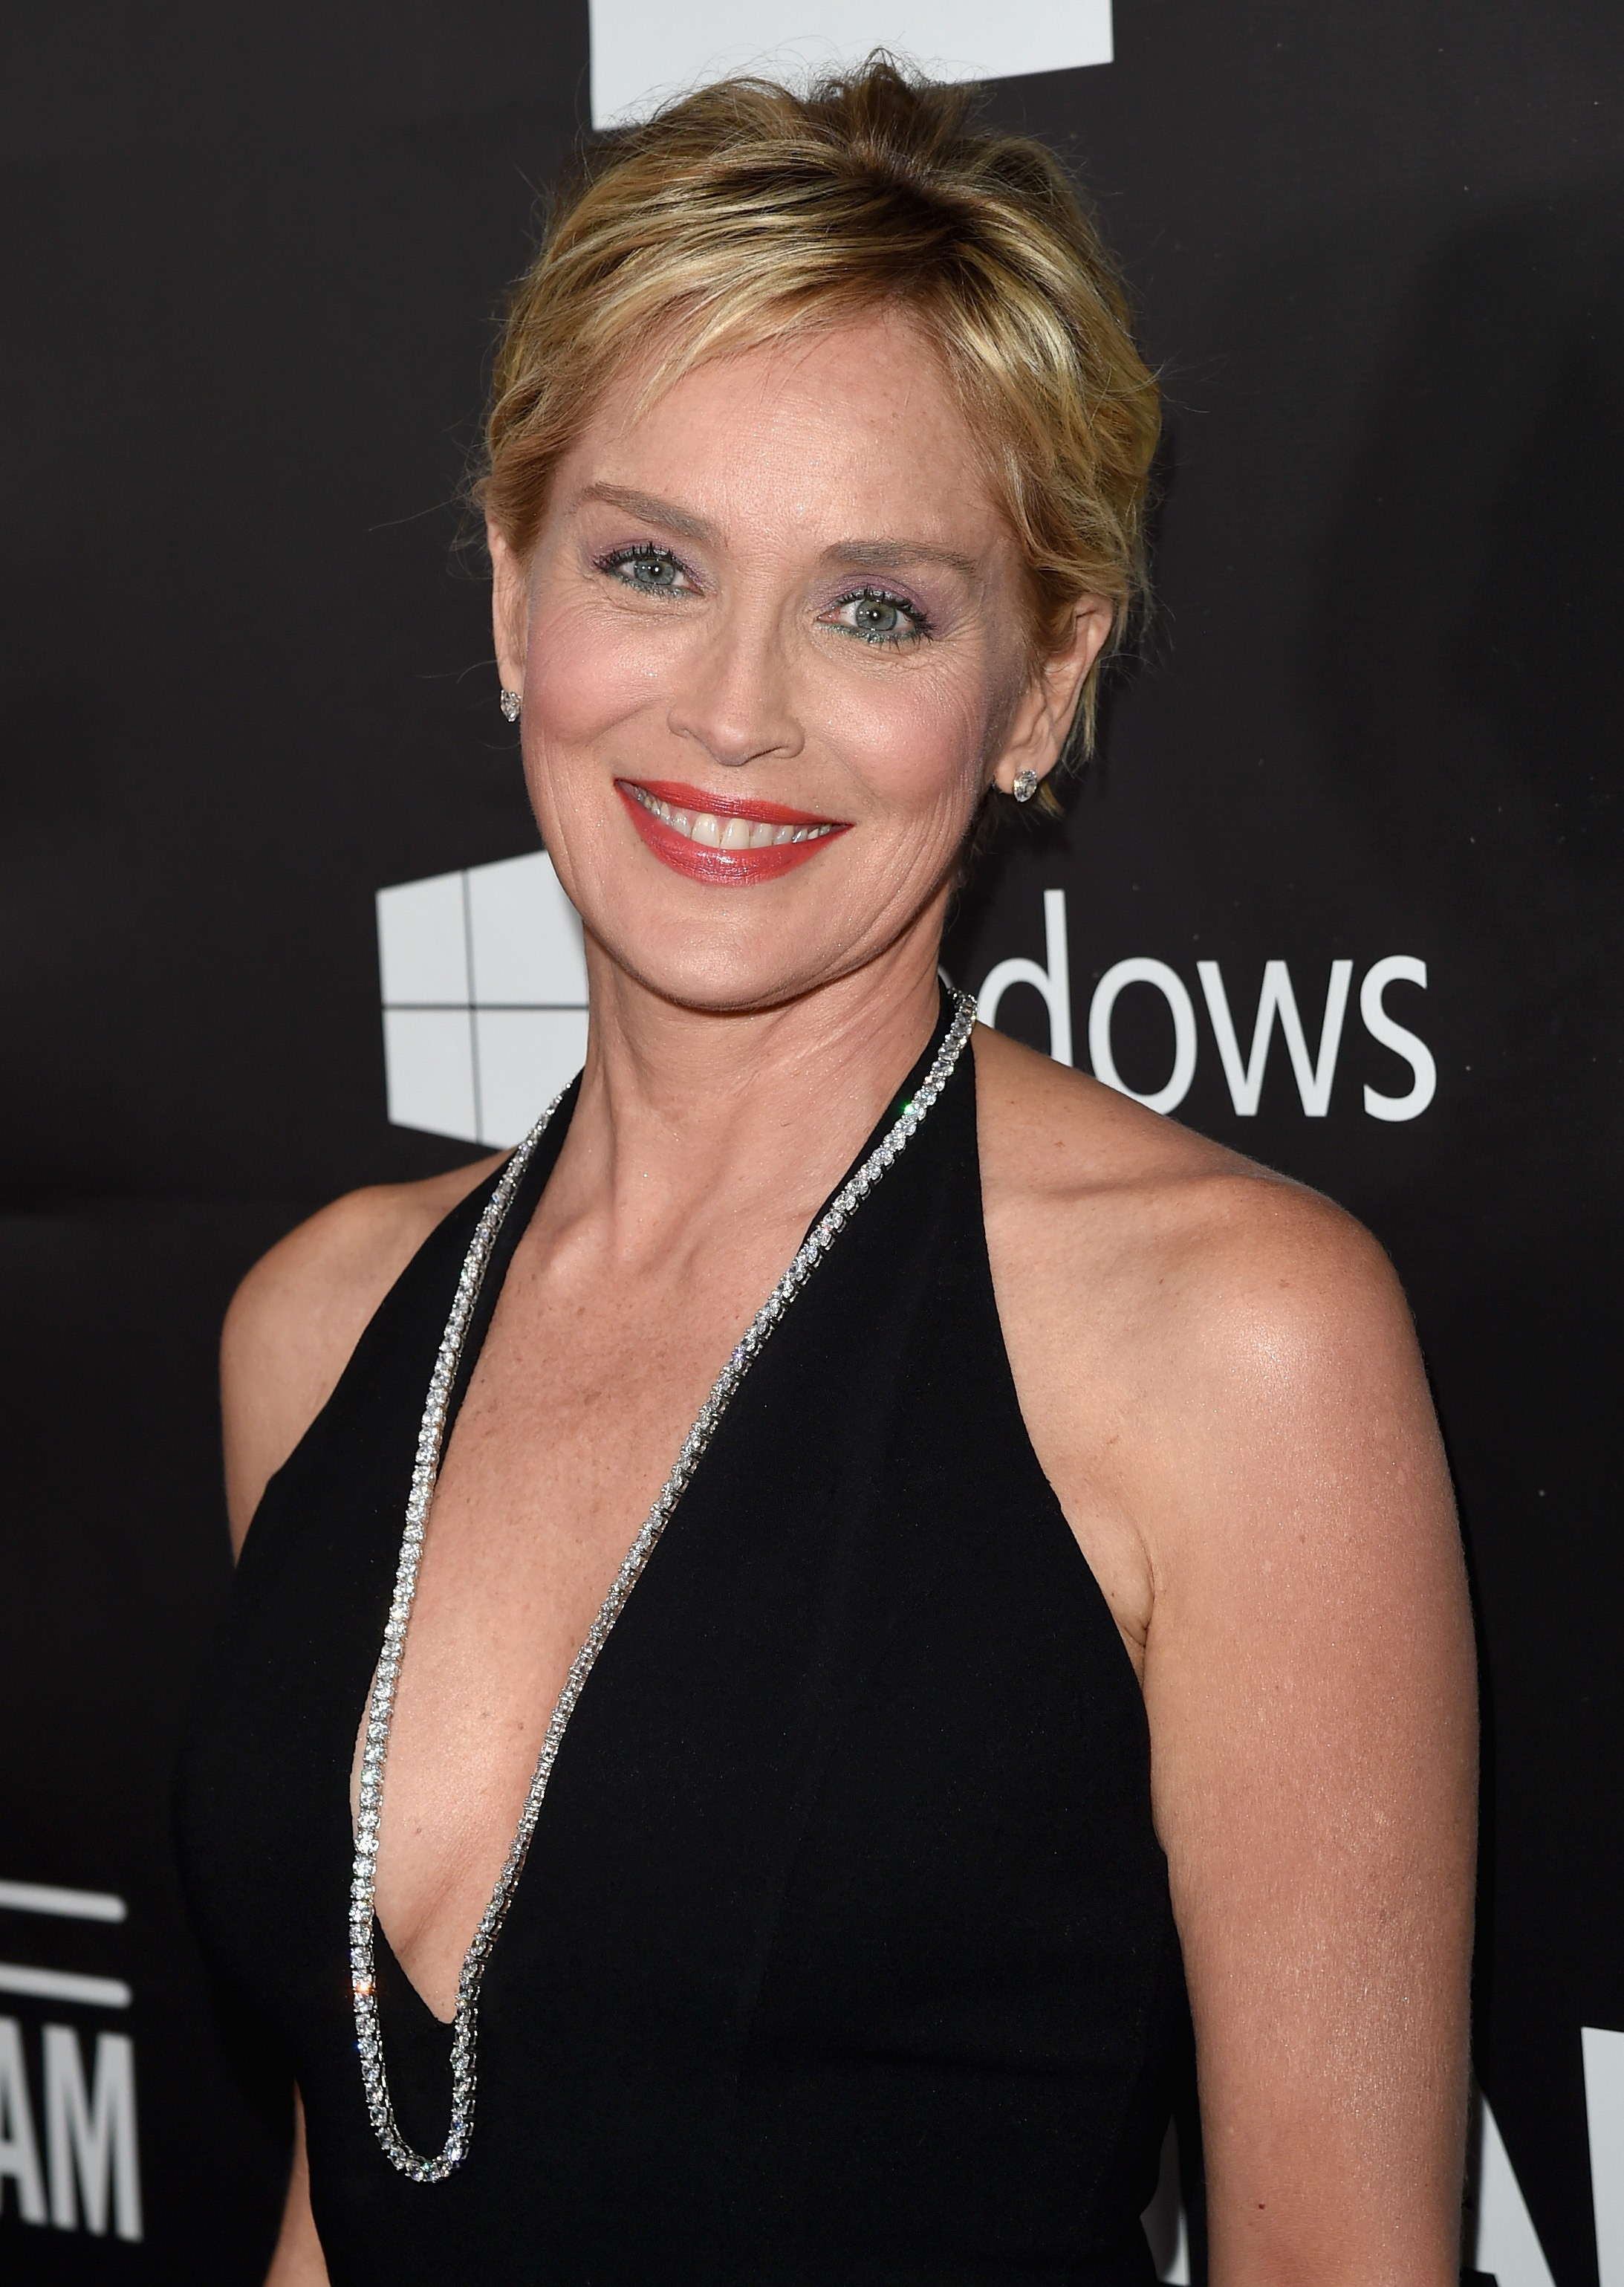 HOLLYWOOD, CA - OCTOBER 29:  amfAR Global Fundraising Chairman Sharon Stone attends amfAR LA Inspiration Gala honoring Tom Ford at Milk Studios on October 29, 2014 in Hollywood, California.  (Photo by Jason Merritt/Getty Images for amfAR) (Foto: Editora Globo)